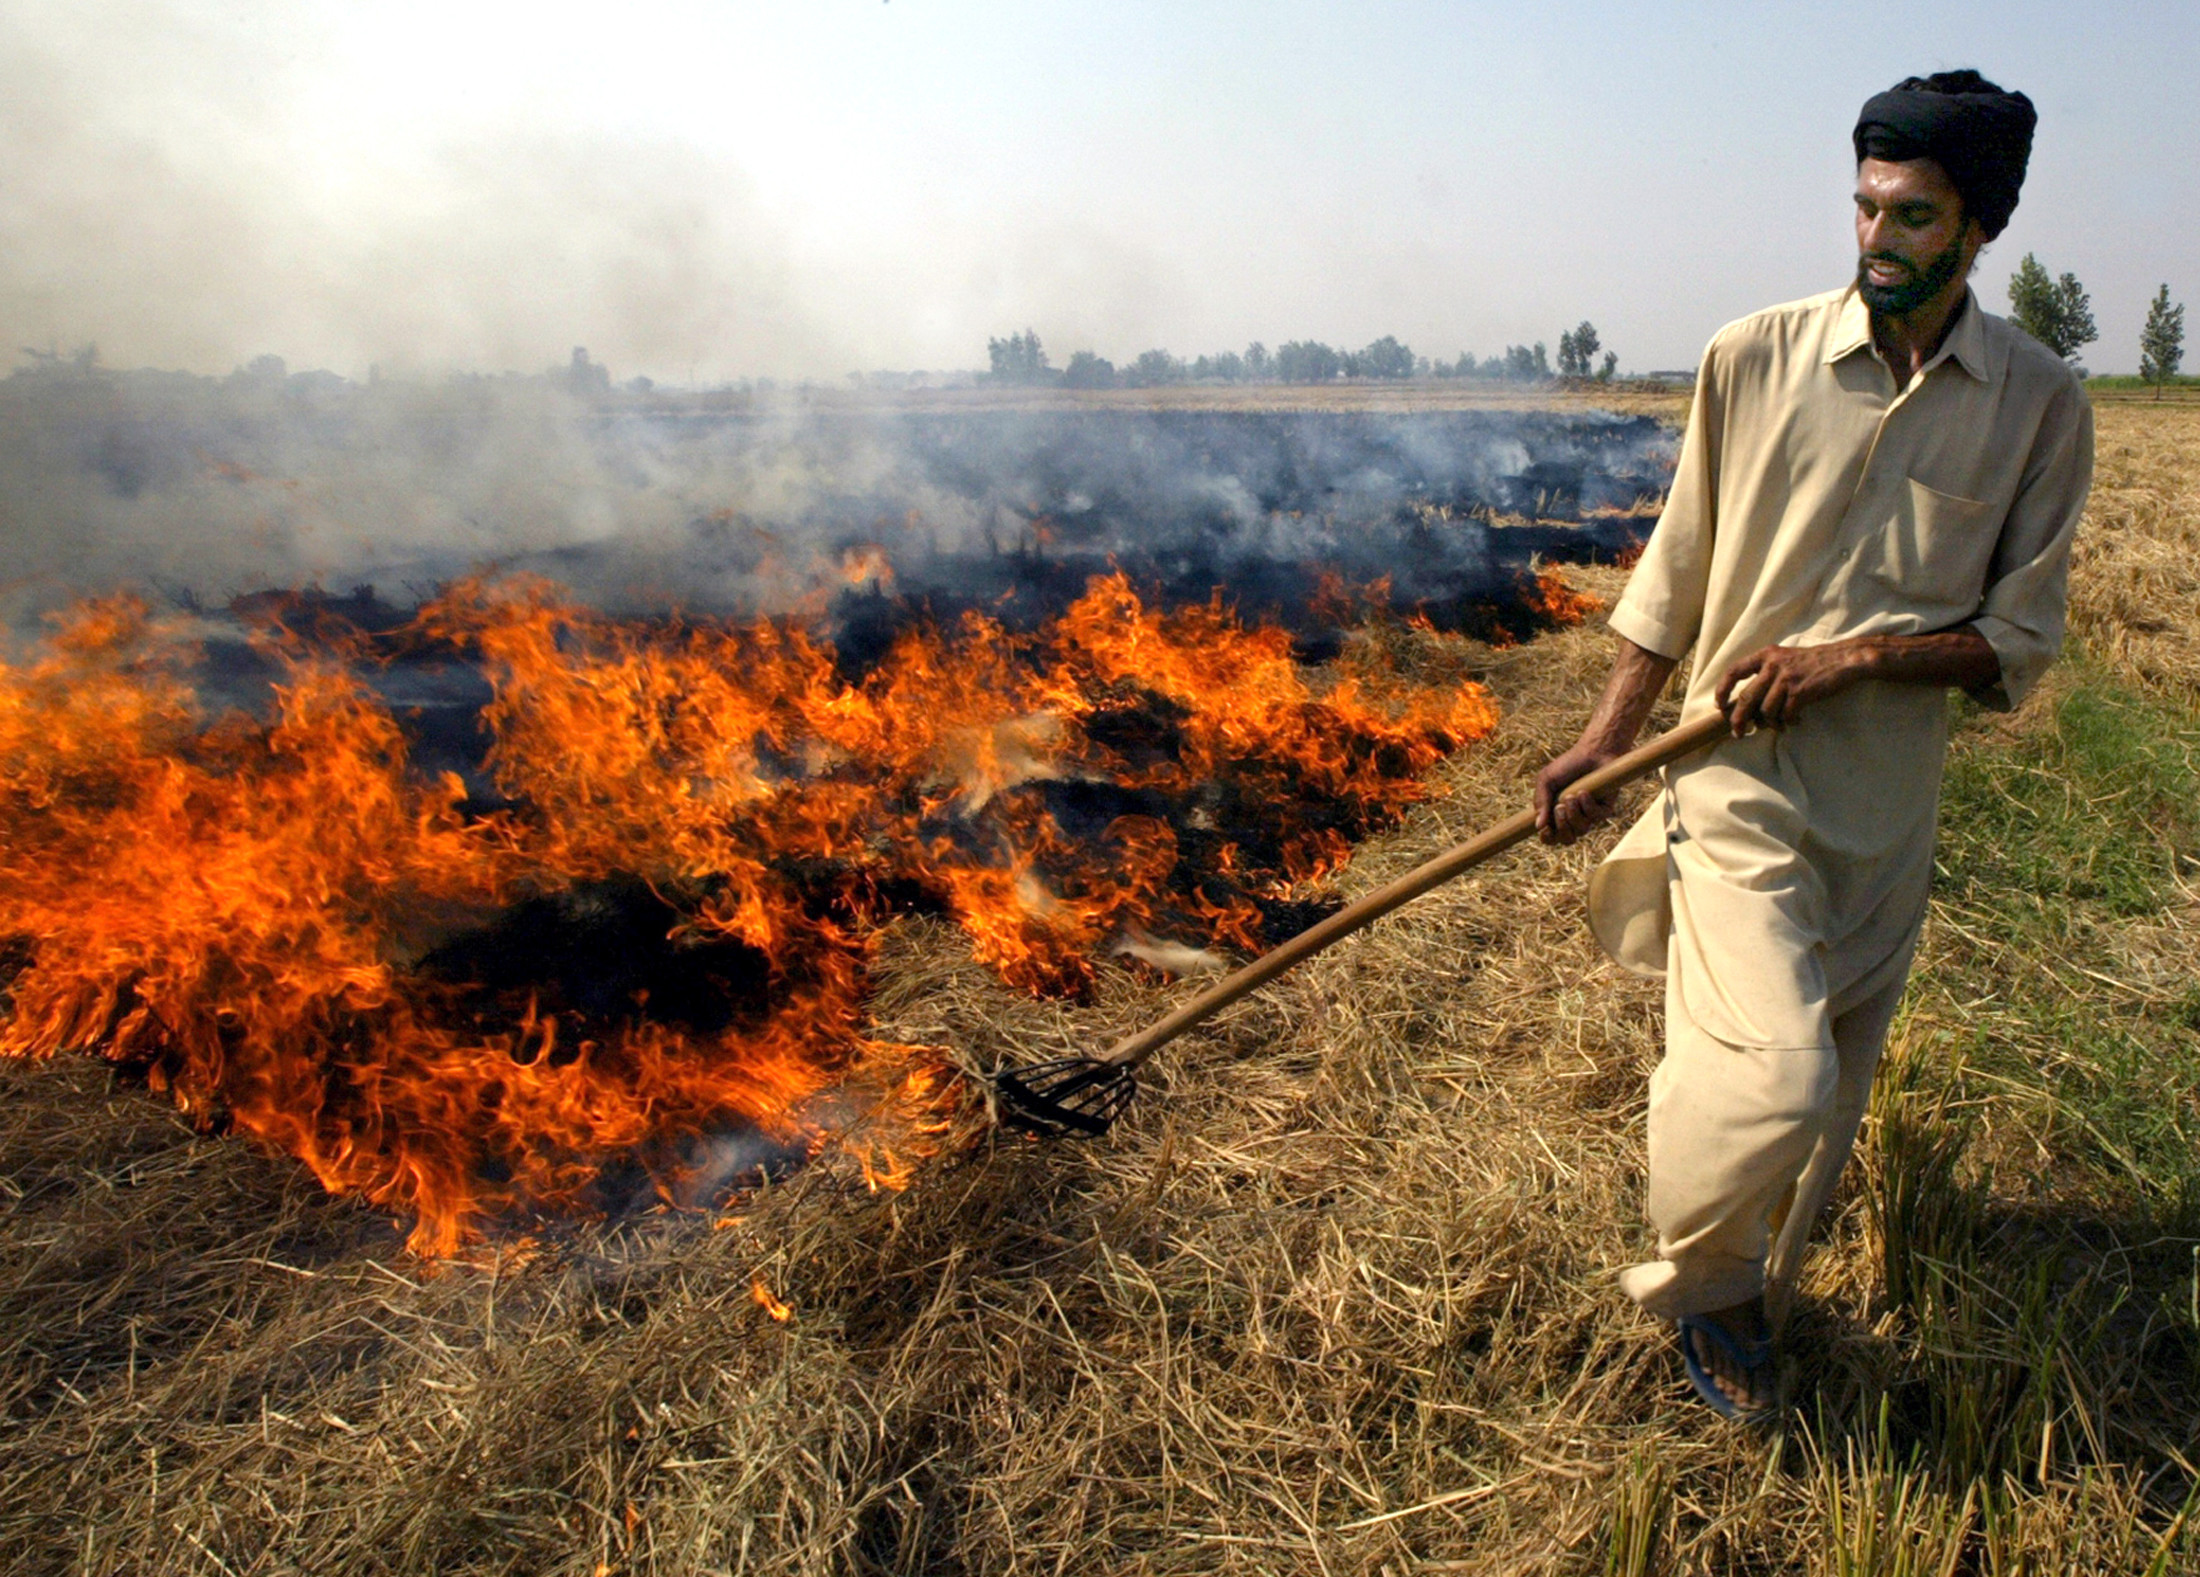 An Indian farmer burns paddy husks after a harvest in the northernIndian city of Chandigarh, October 21, 2003. India expects a bumpergrains and oilseeds crop this winter season following the best monsoonin five years, but analysts said the government's outlook seemed toooptimistic. REUTERS/Kamal KishoreAH/DL - RP4DRHYYCIAA